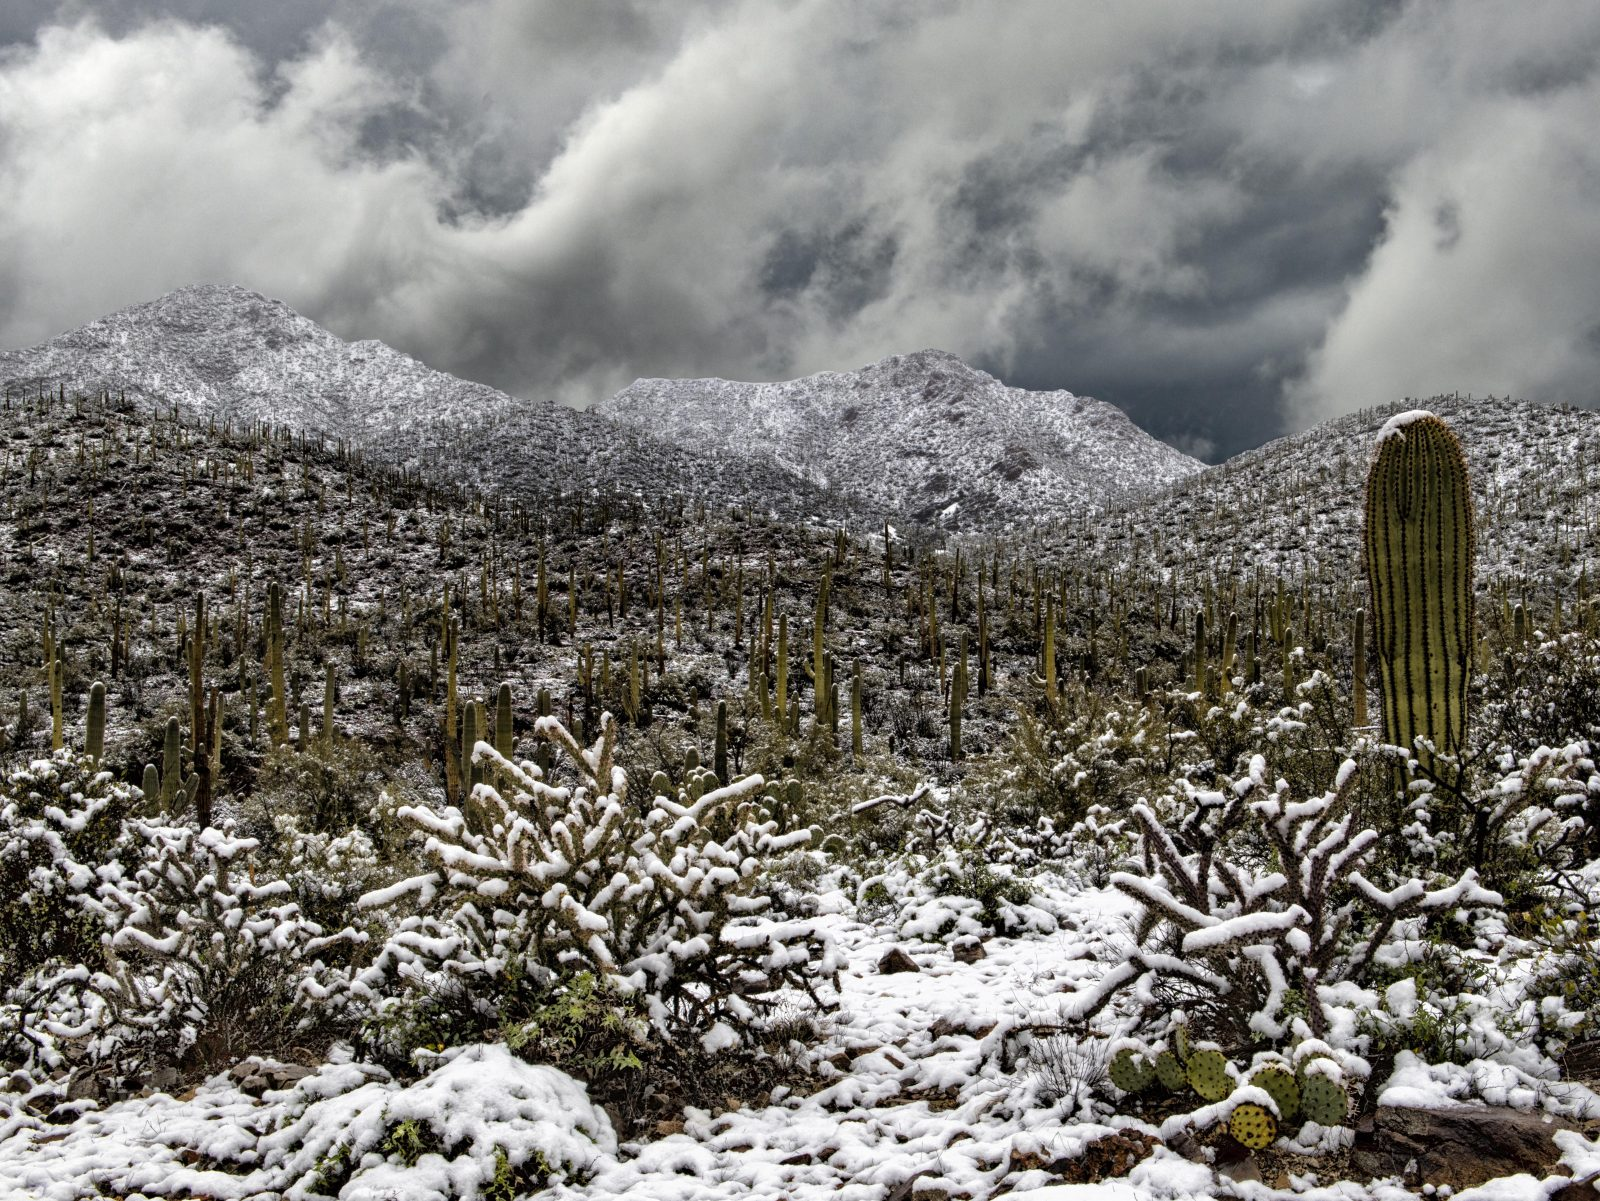 Snowfall at Saguaro National Park